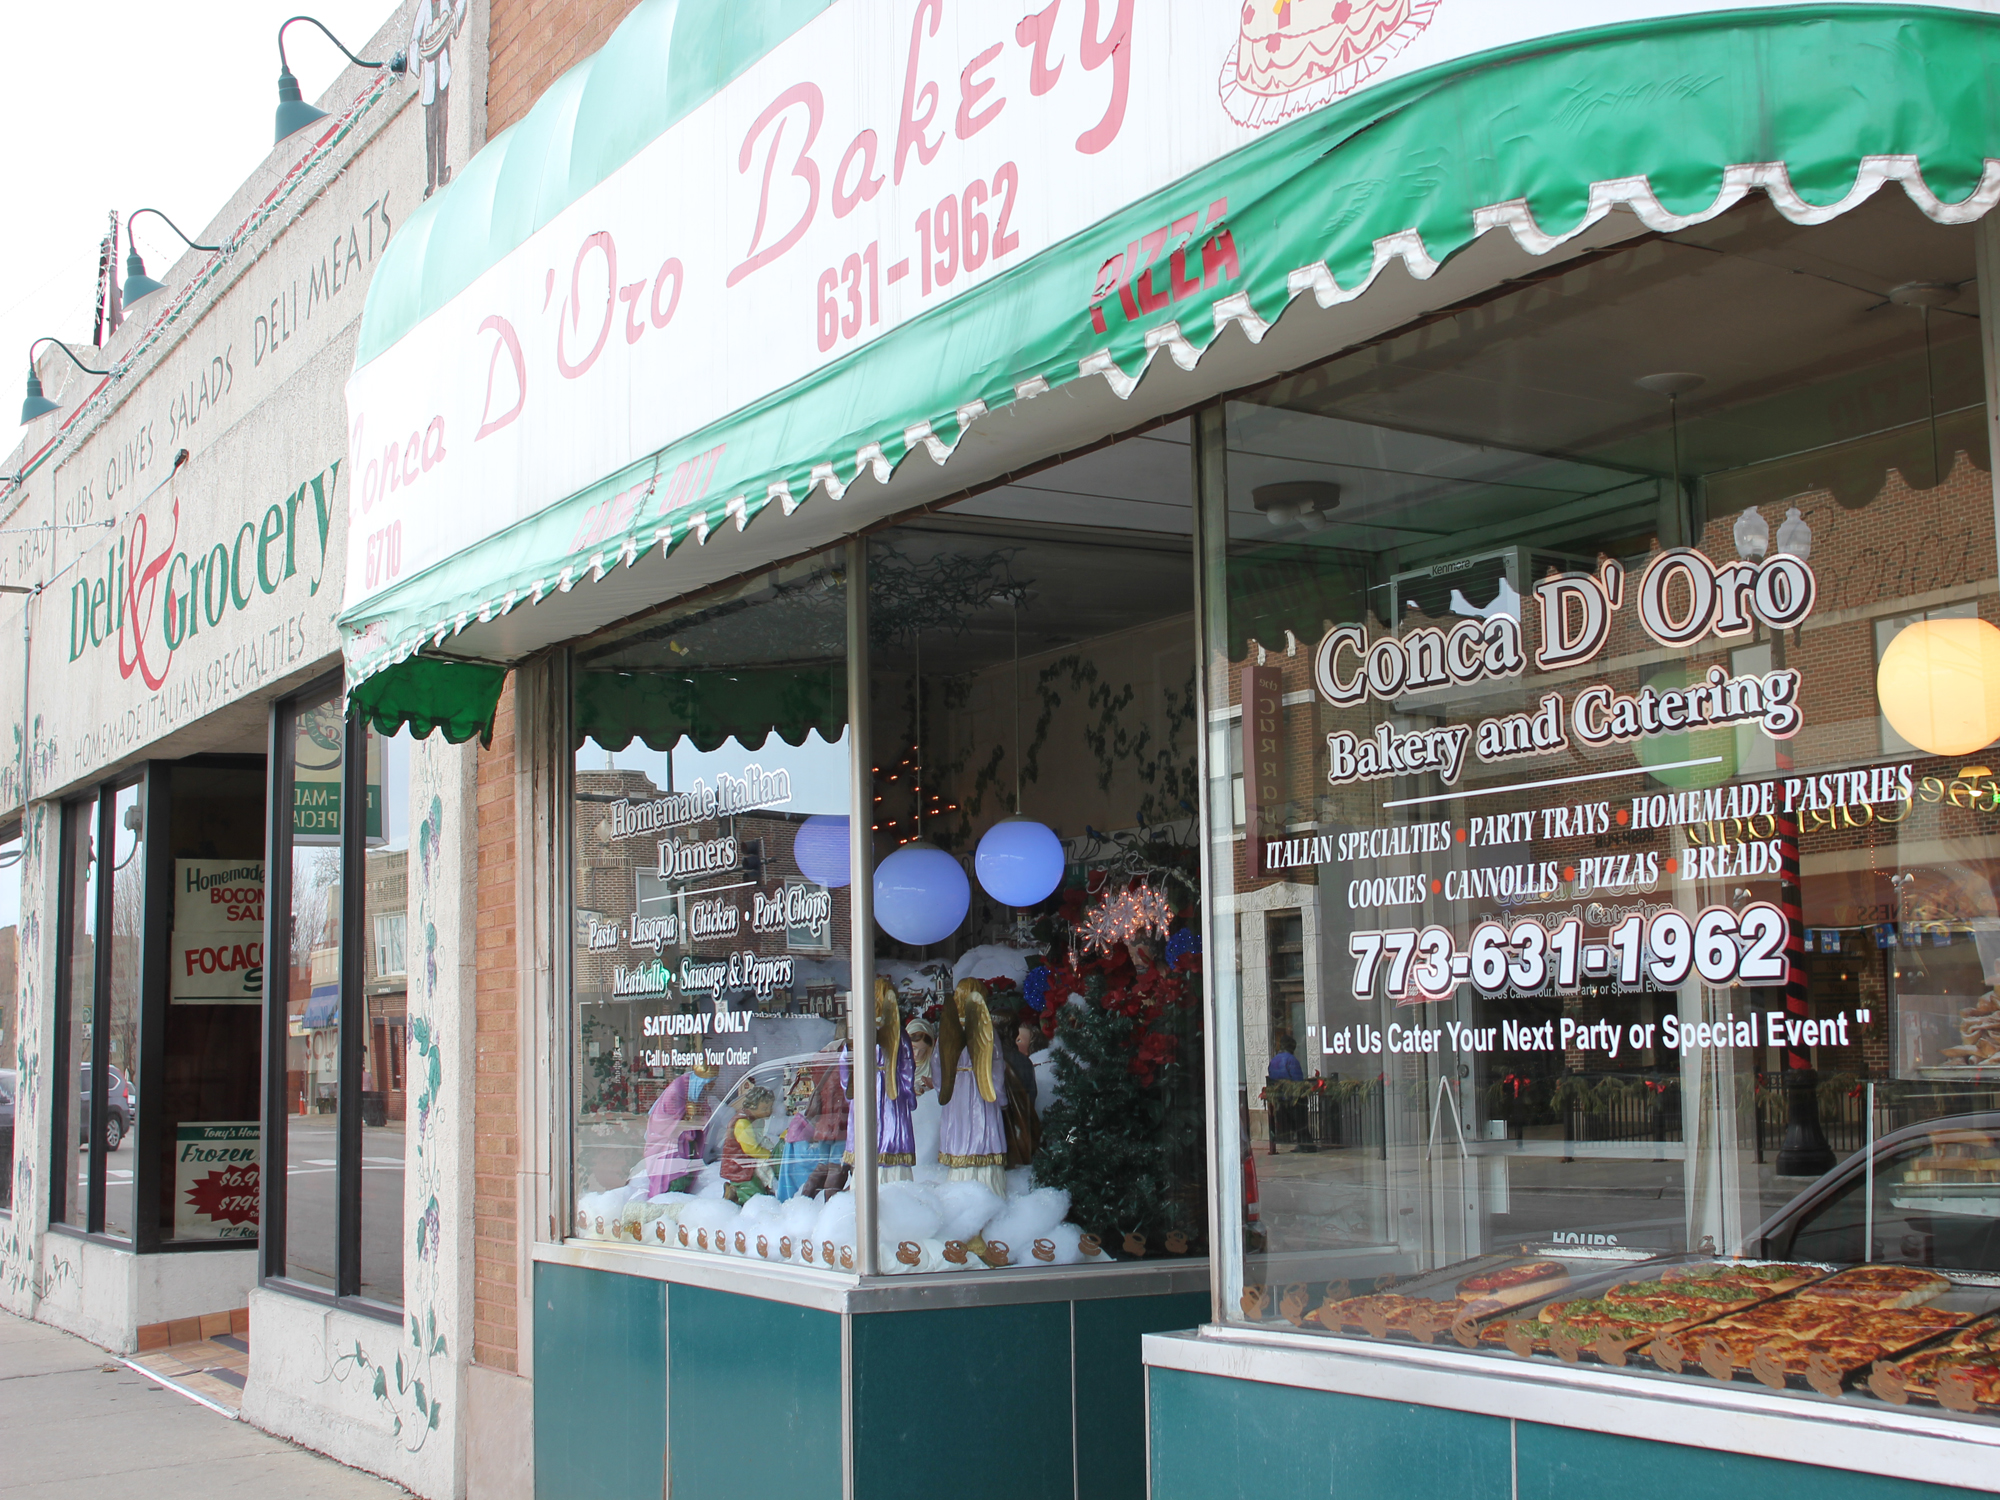 THE FOODITOR GUIDE TO OLD SCHOOL SHOPS ON THE NORTHWEST SIDE